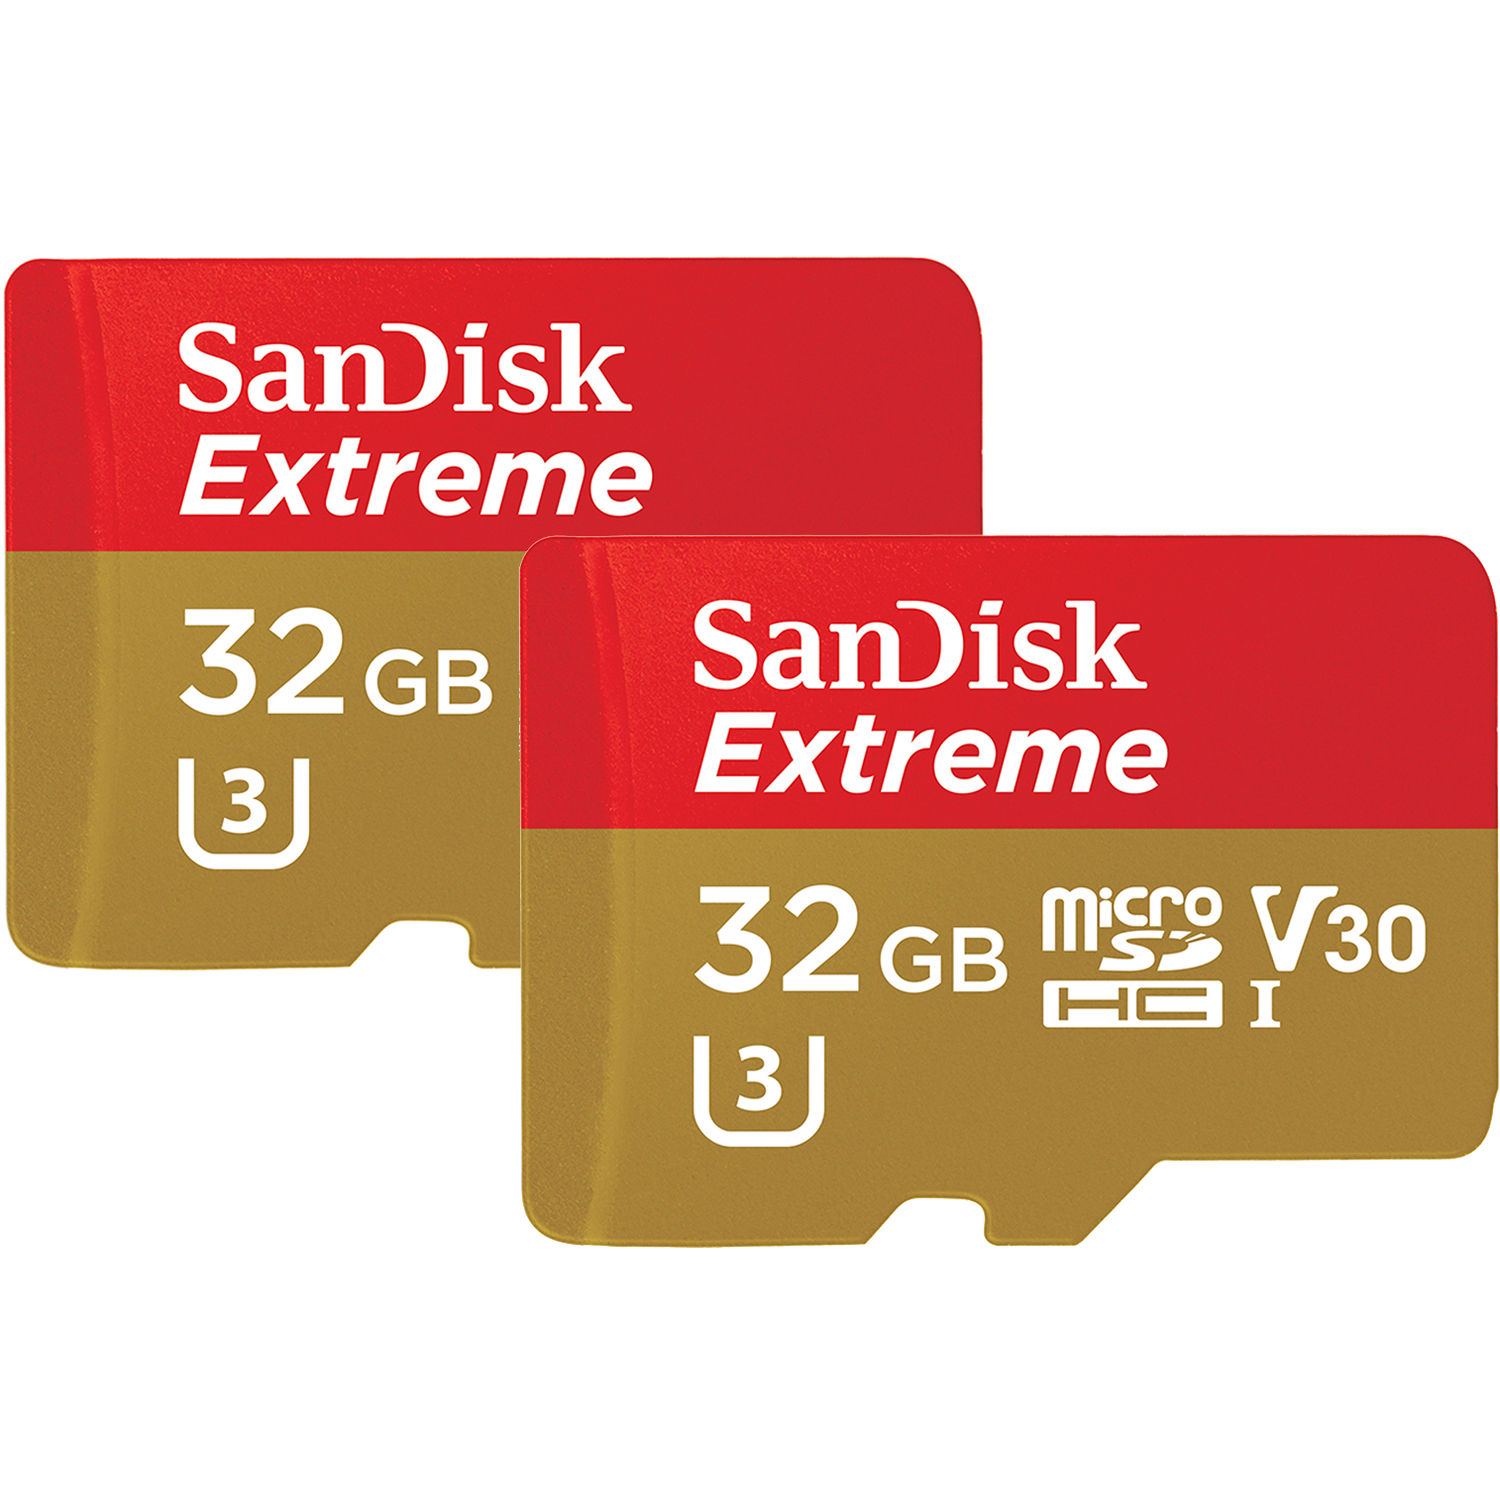 b3c24deae SanDisk 32GB Extreme UHS-I microSDHC Memory Card with SD Adapter (2-Pack